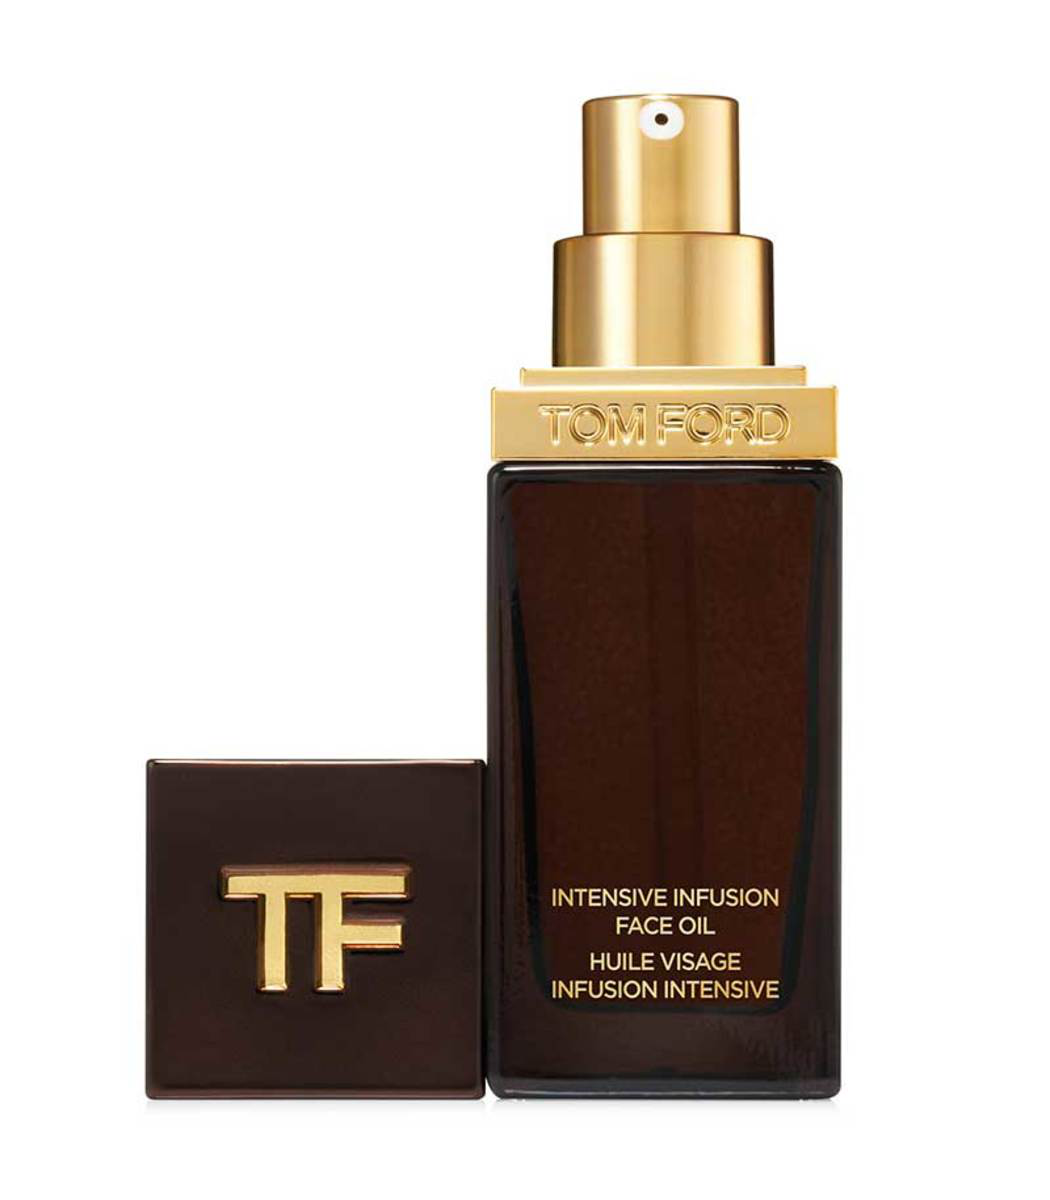 Tom Ford Intensive Infusion Face Oil In N/a